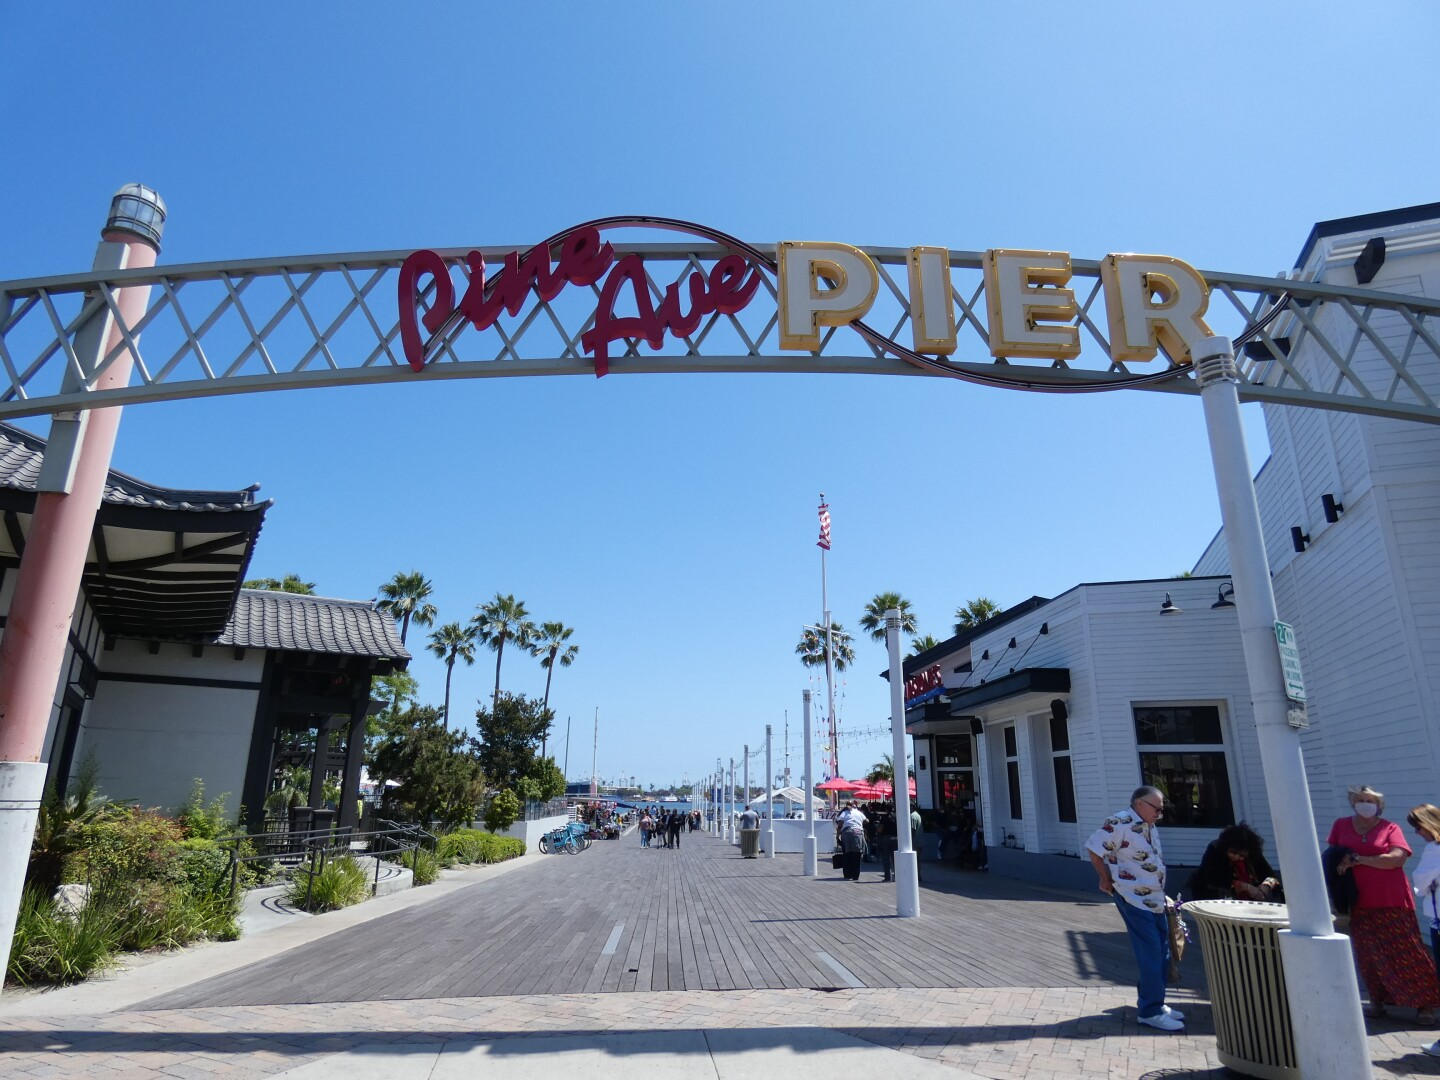 A sign for Pine Ave Pier in Long Beach, California.